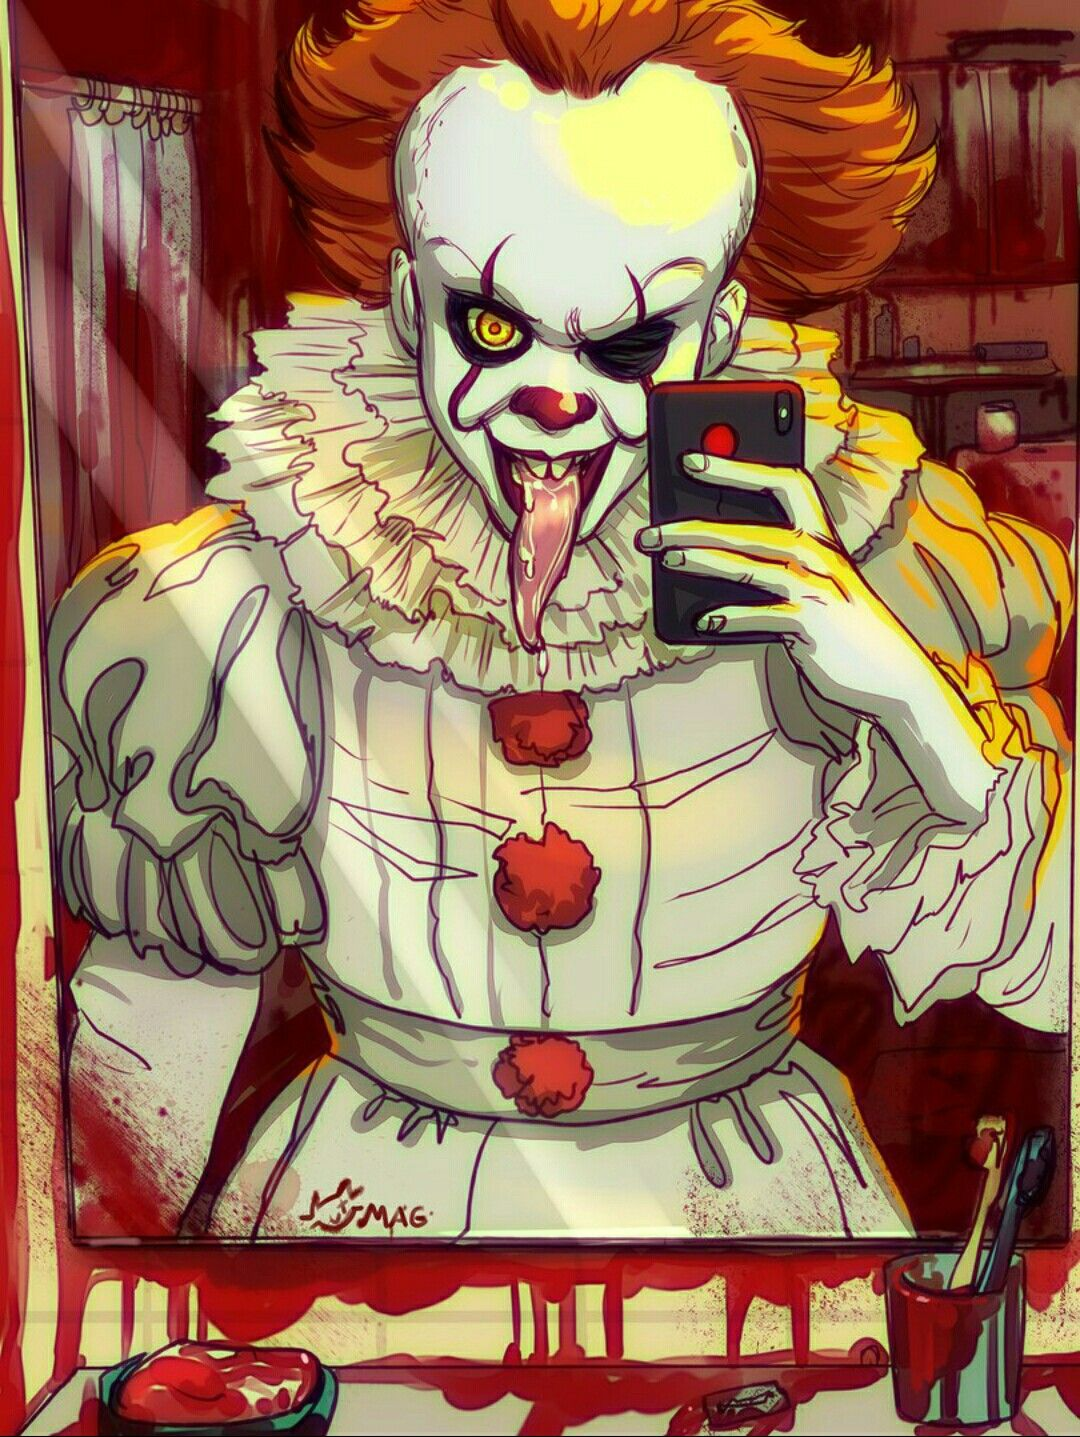 Funny Clown IT 2017 Stephen King Pennywise Pinterest